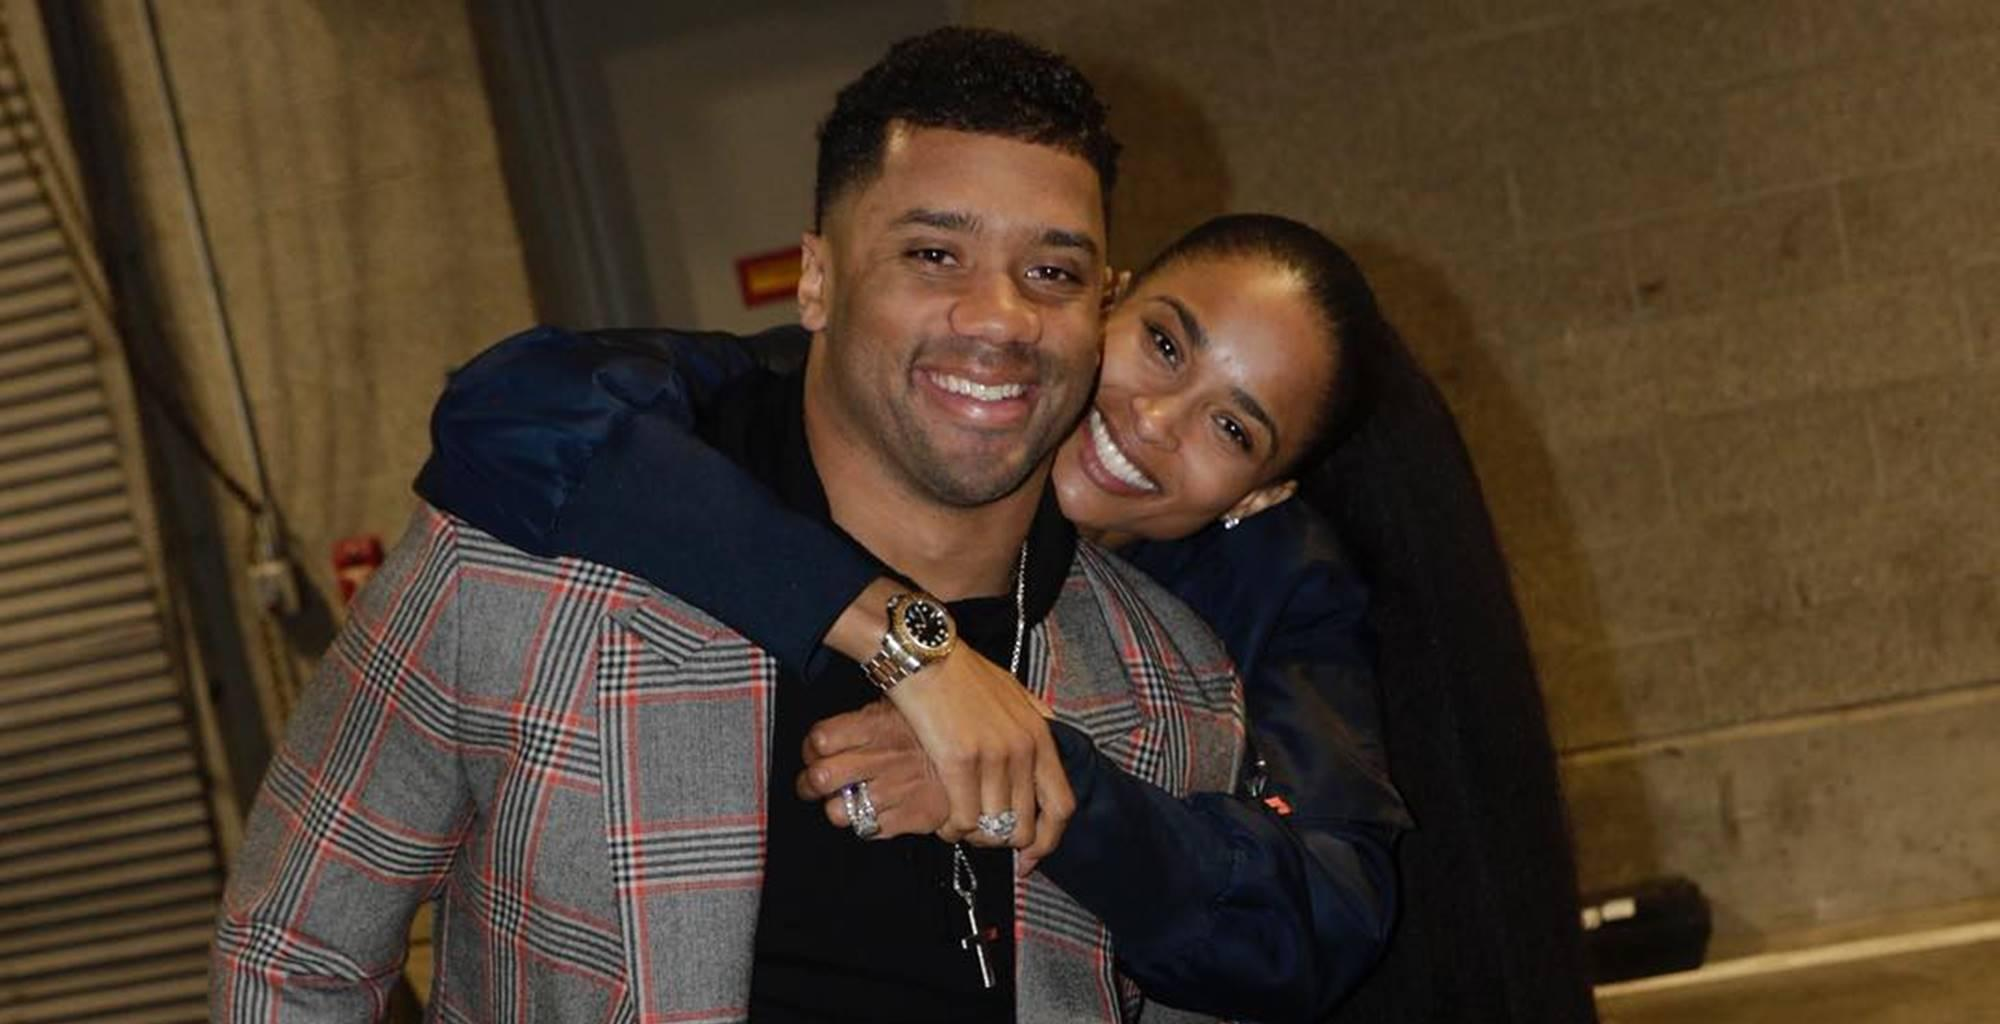 Proud Wife Ciara Focuses On Her Man Russell Wilson As Critics Bash Future's Mom's Hair And Looks